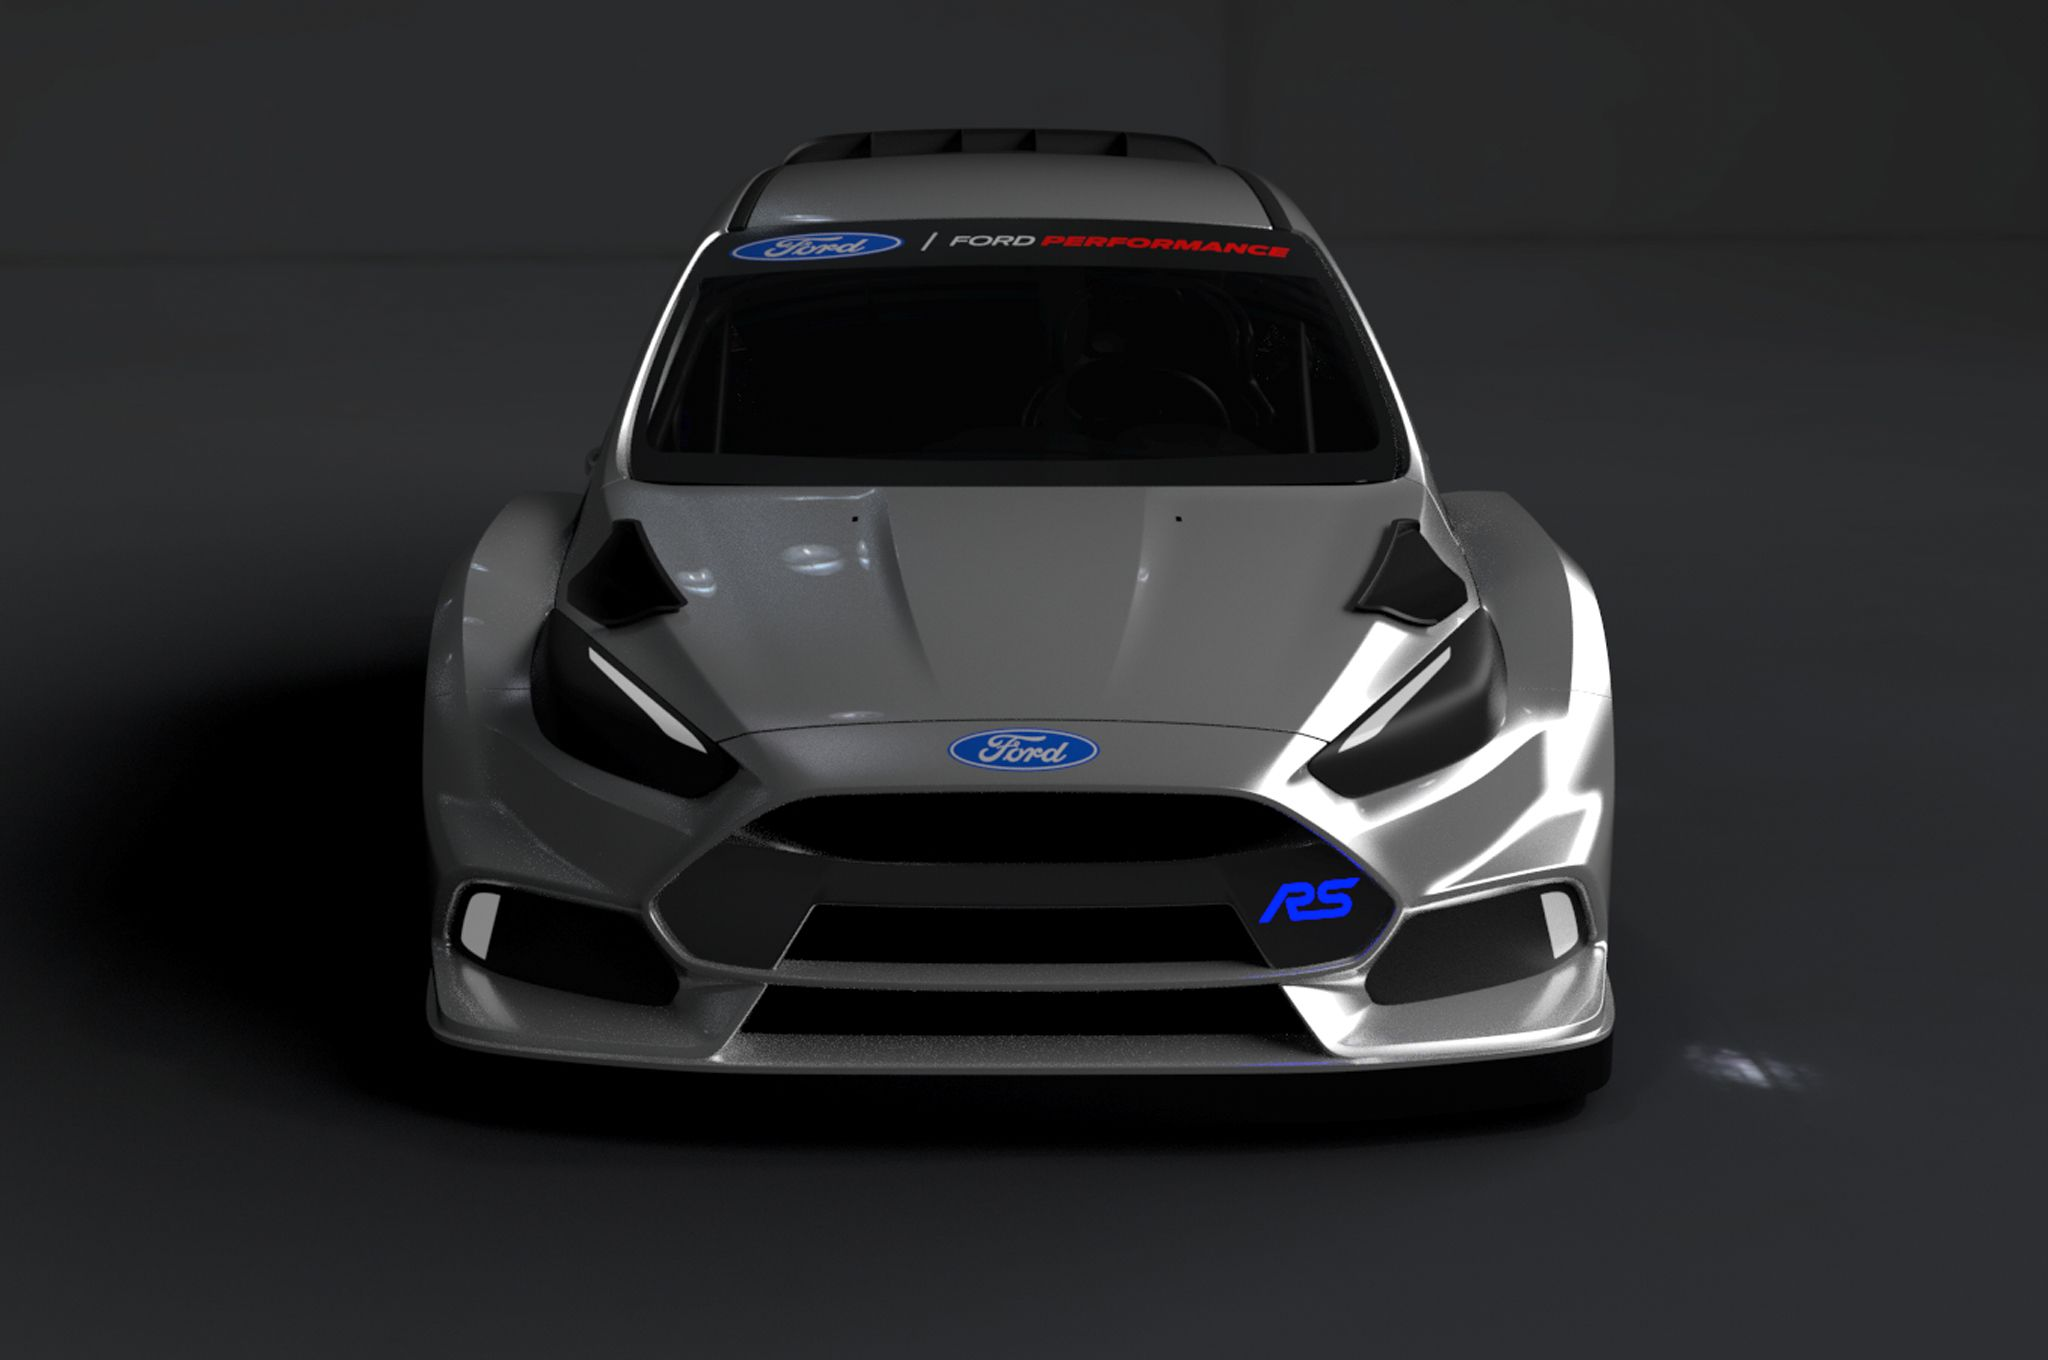 word-rallycross-championship-ford-focus-rs-race-car-front-end.jpg